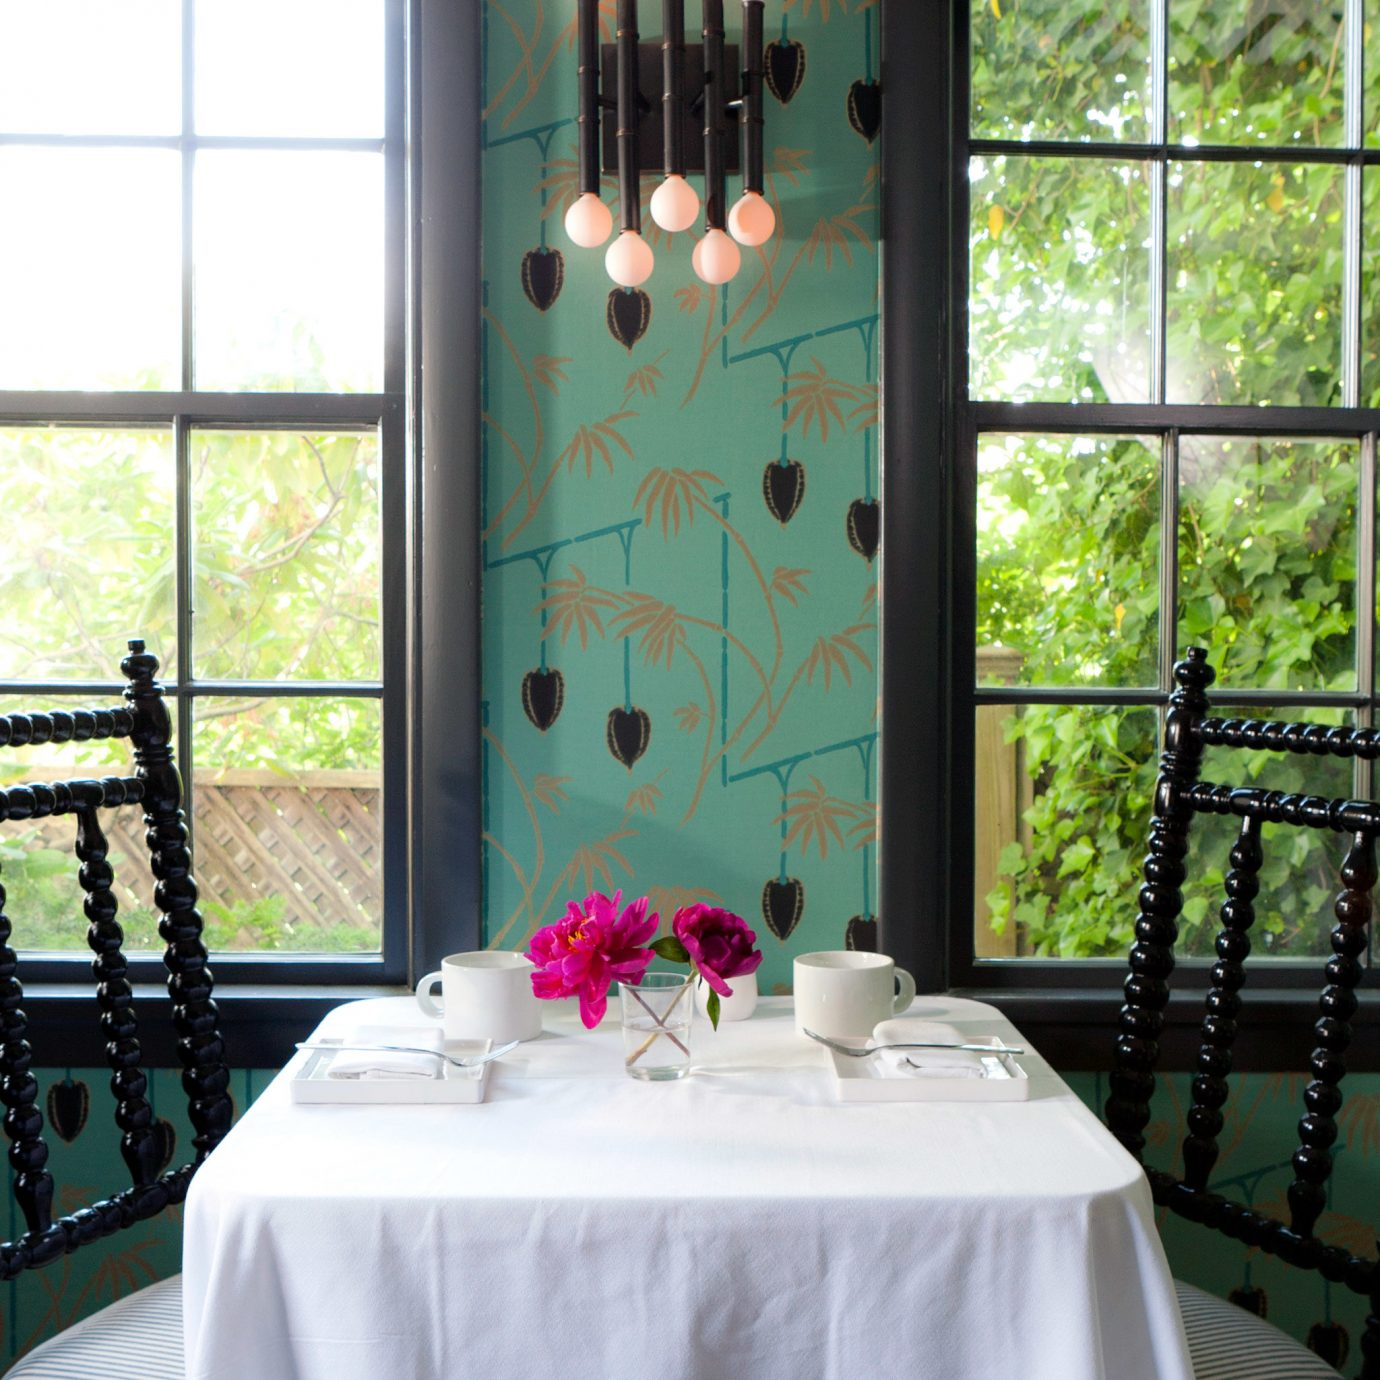 B&B Boutique Dining Eat Hip green home ceremony textile restaurant